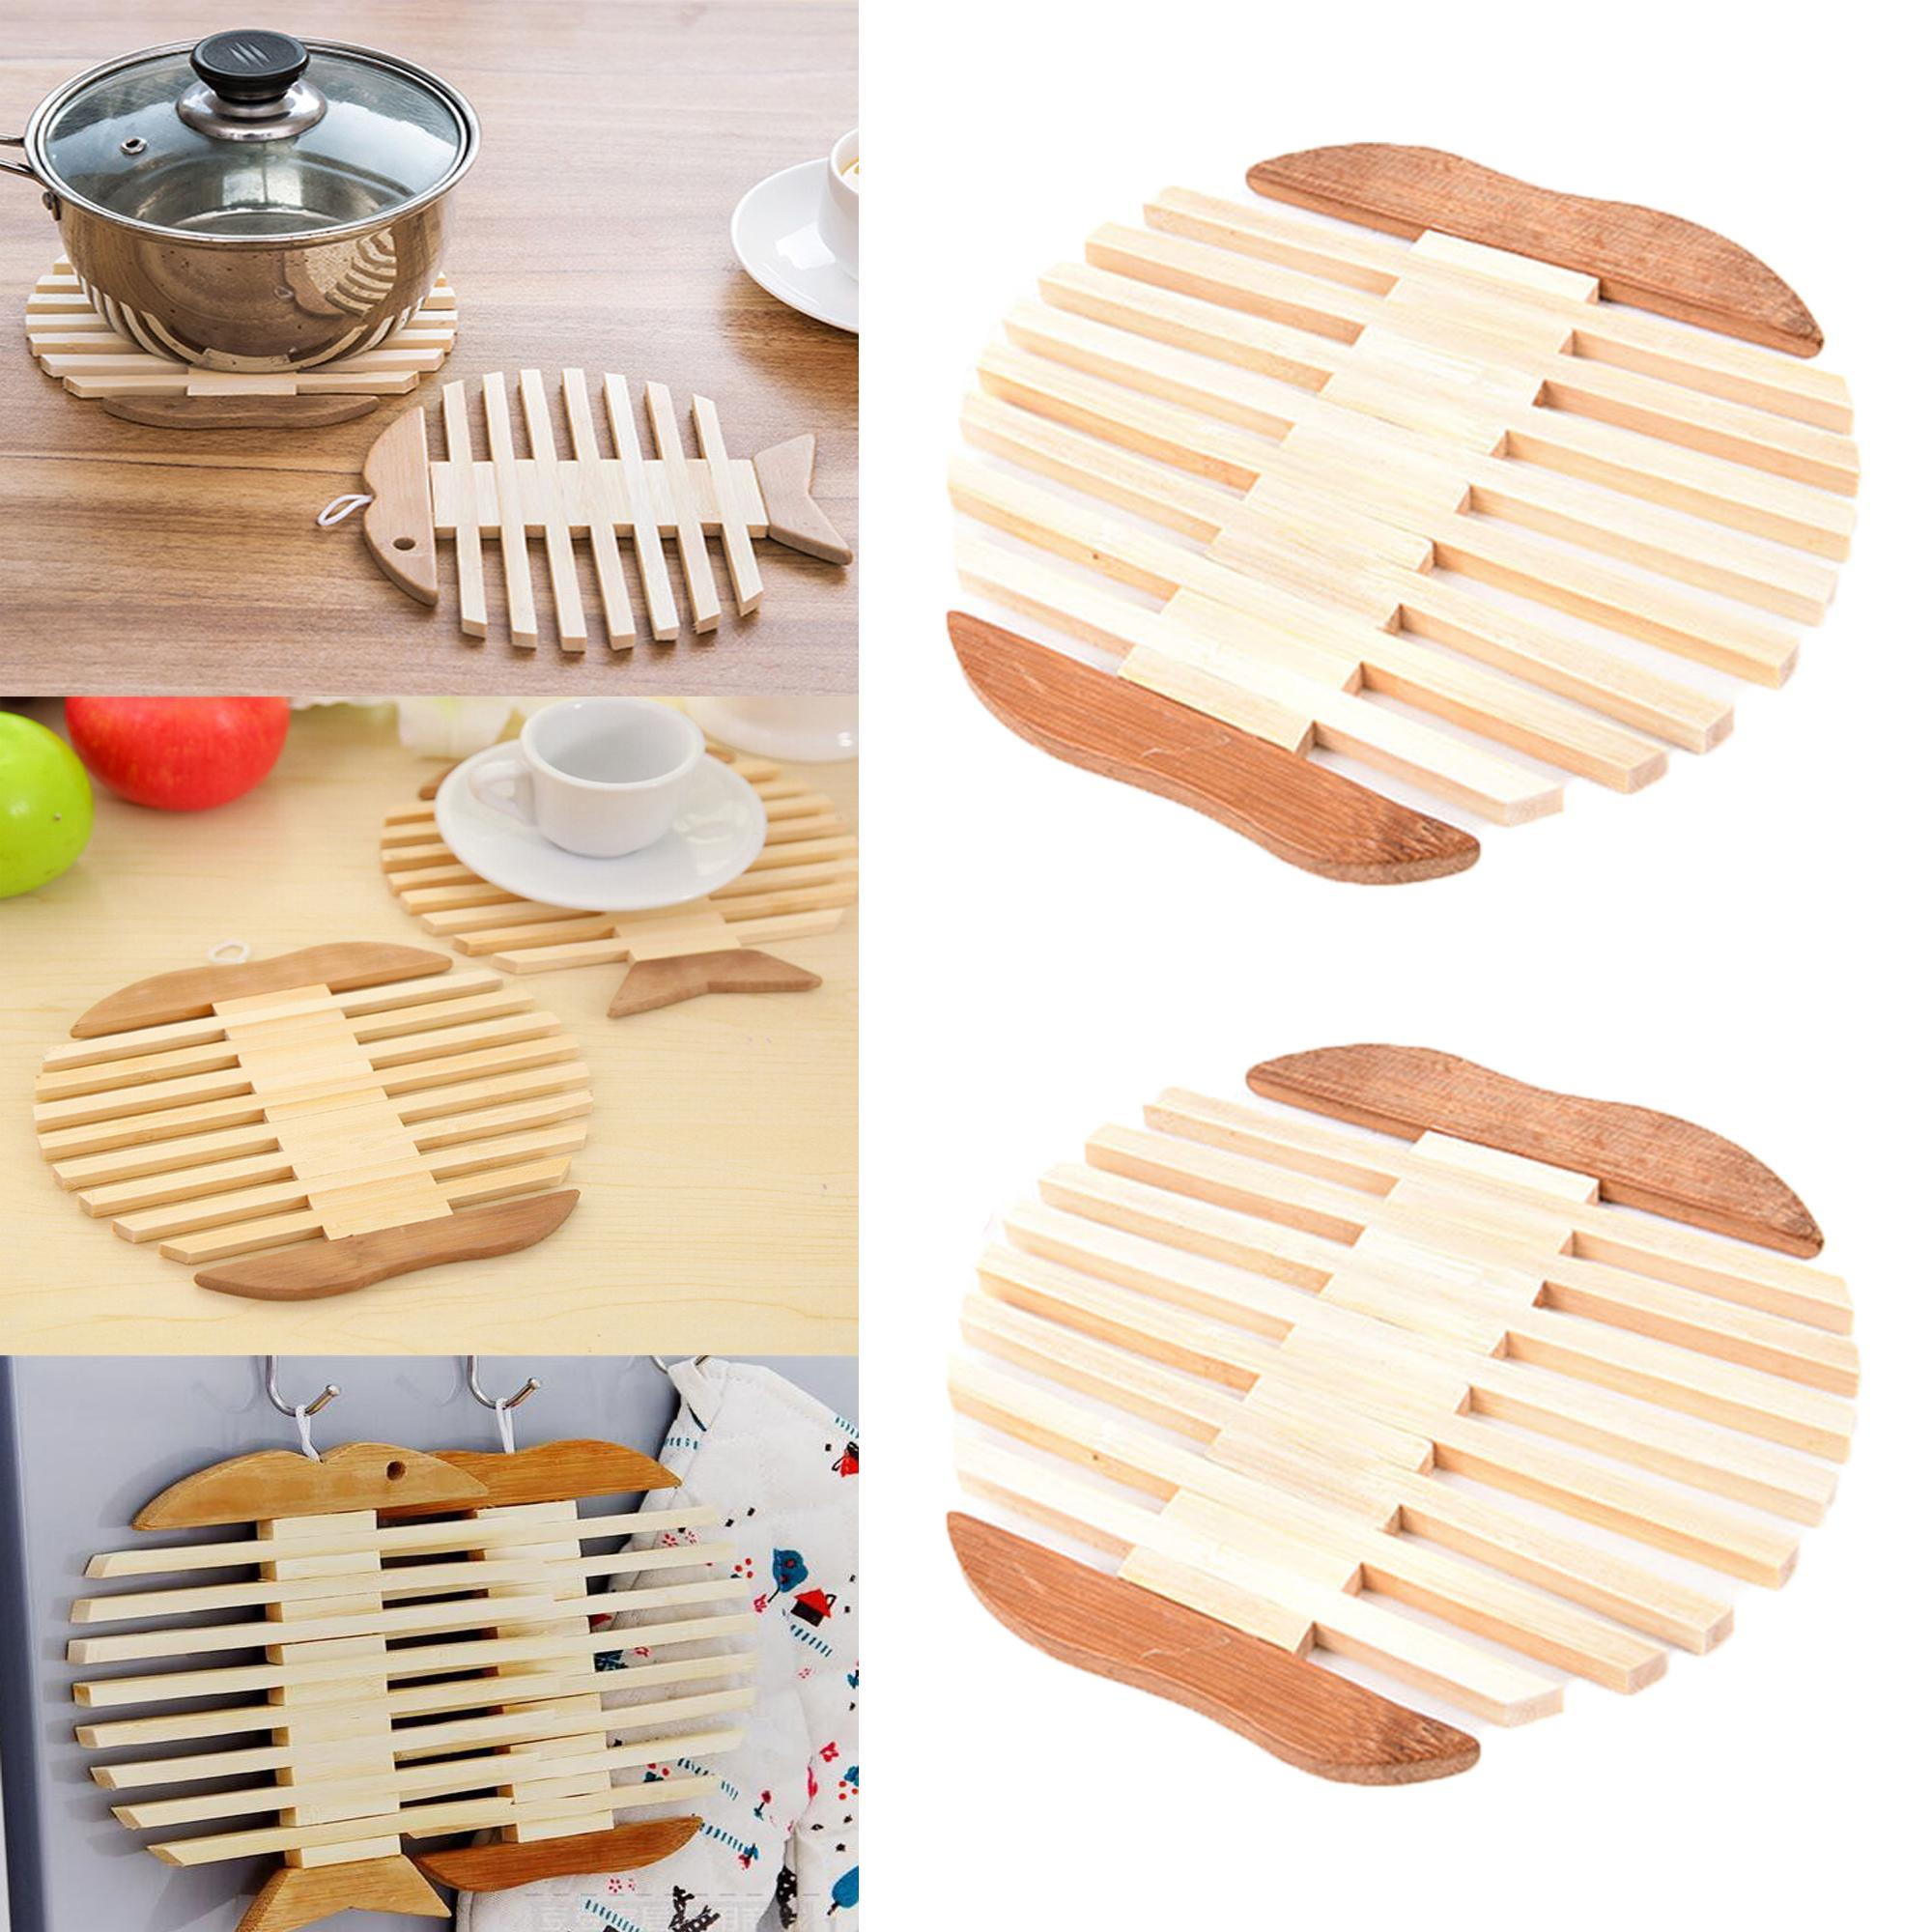 c2daf51d1e5 BUY 1 TAKE 1 Bamboo Heat Resistant Pan Apple Shaped Mats Coaster Pot Mat  Holder Kitchen